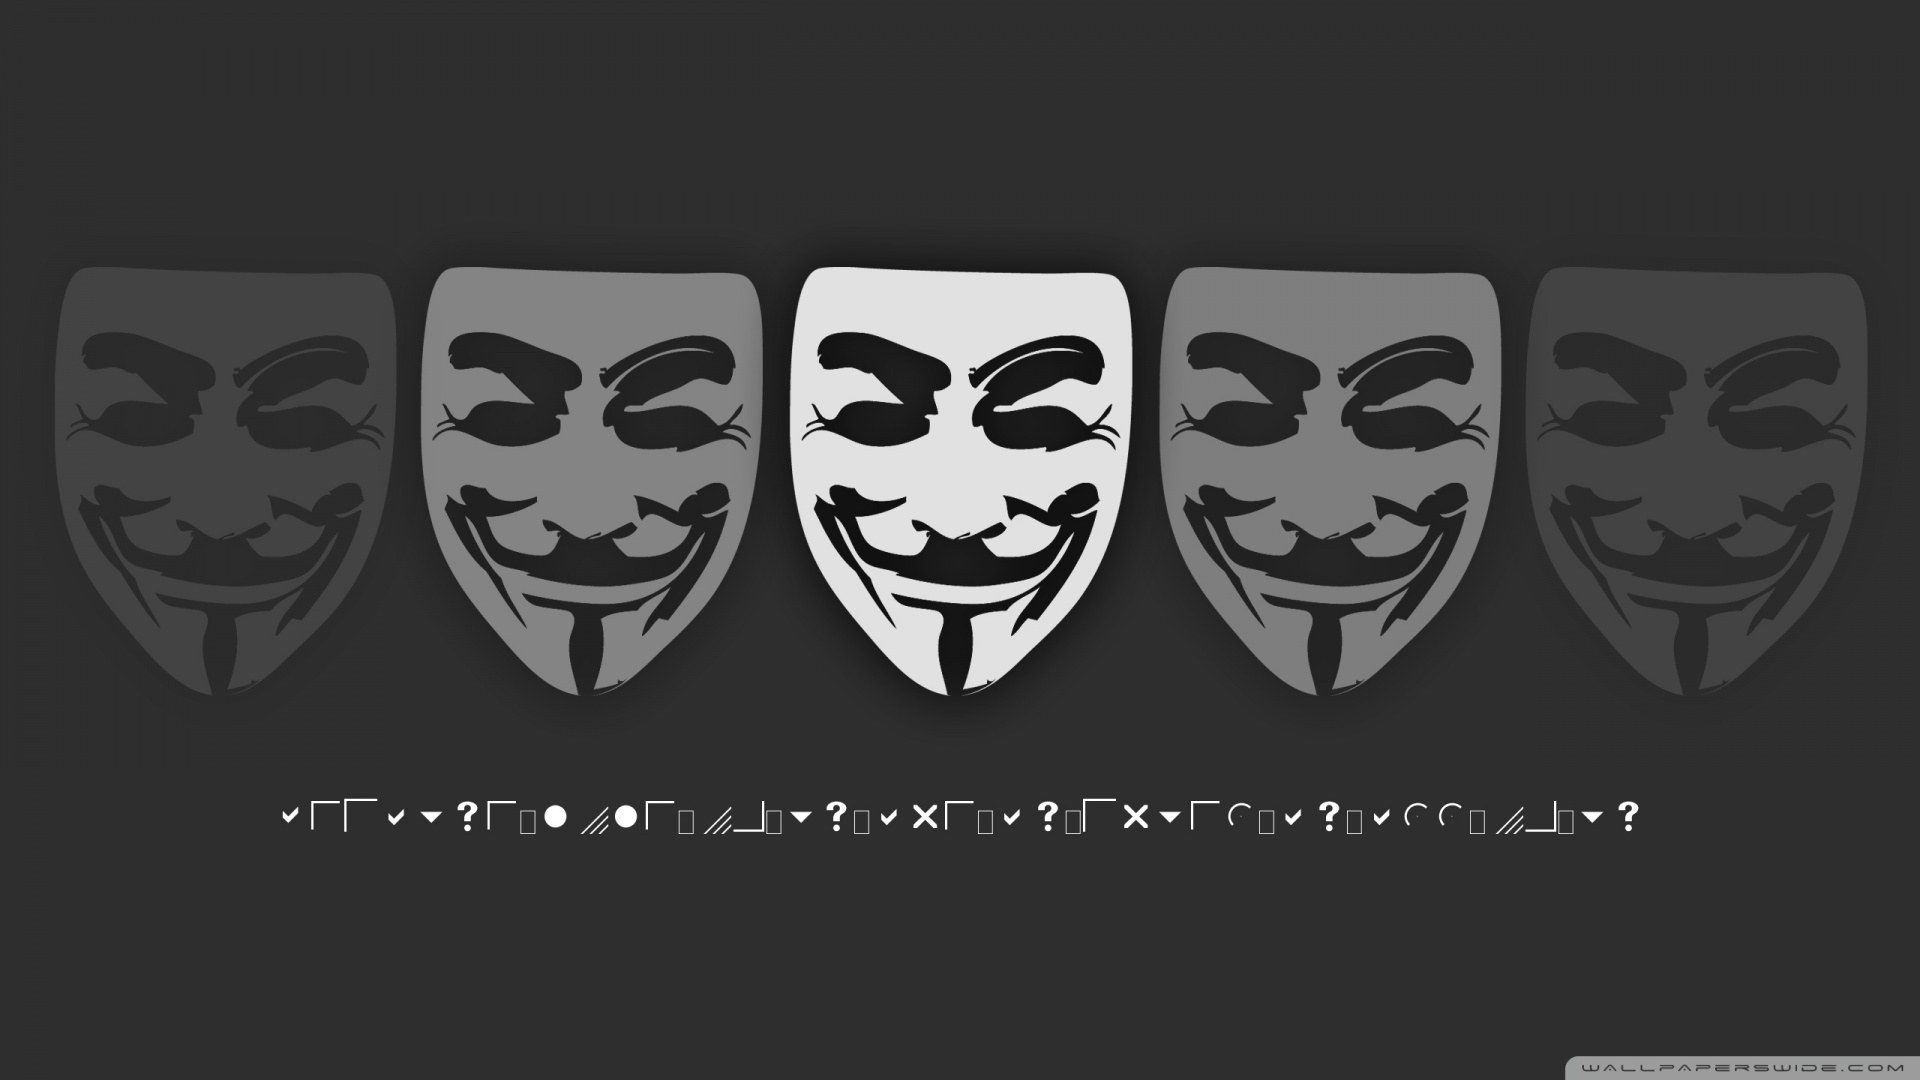 Free Download Movies V For Vendetta Masks 1920x1080 Hd Wallpaper